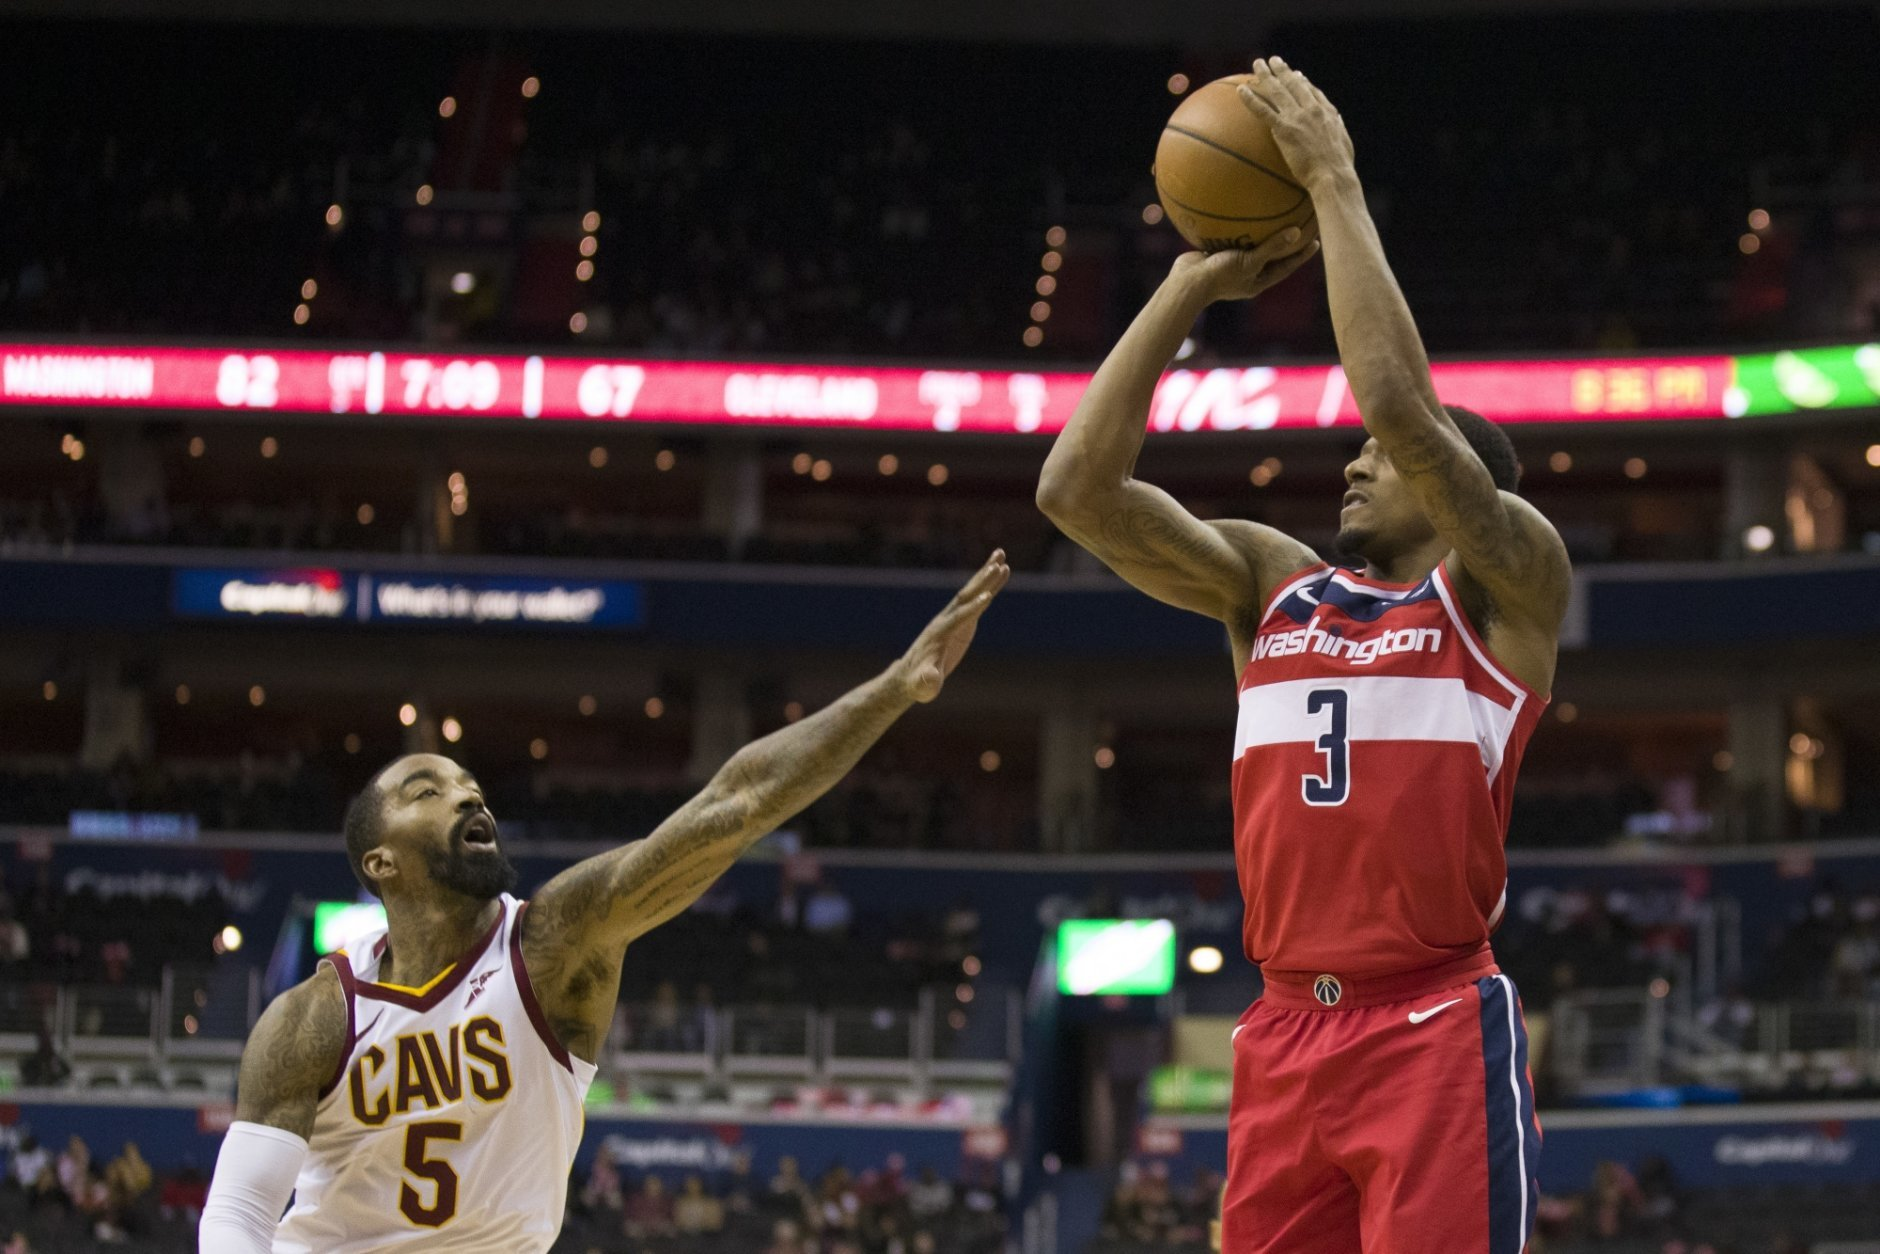 reputable site a4793 47614 Bradley Beal scores 20 points, Wizards rout Cavaliers 119-95 ...